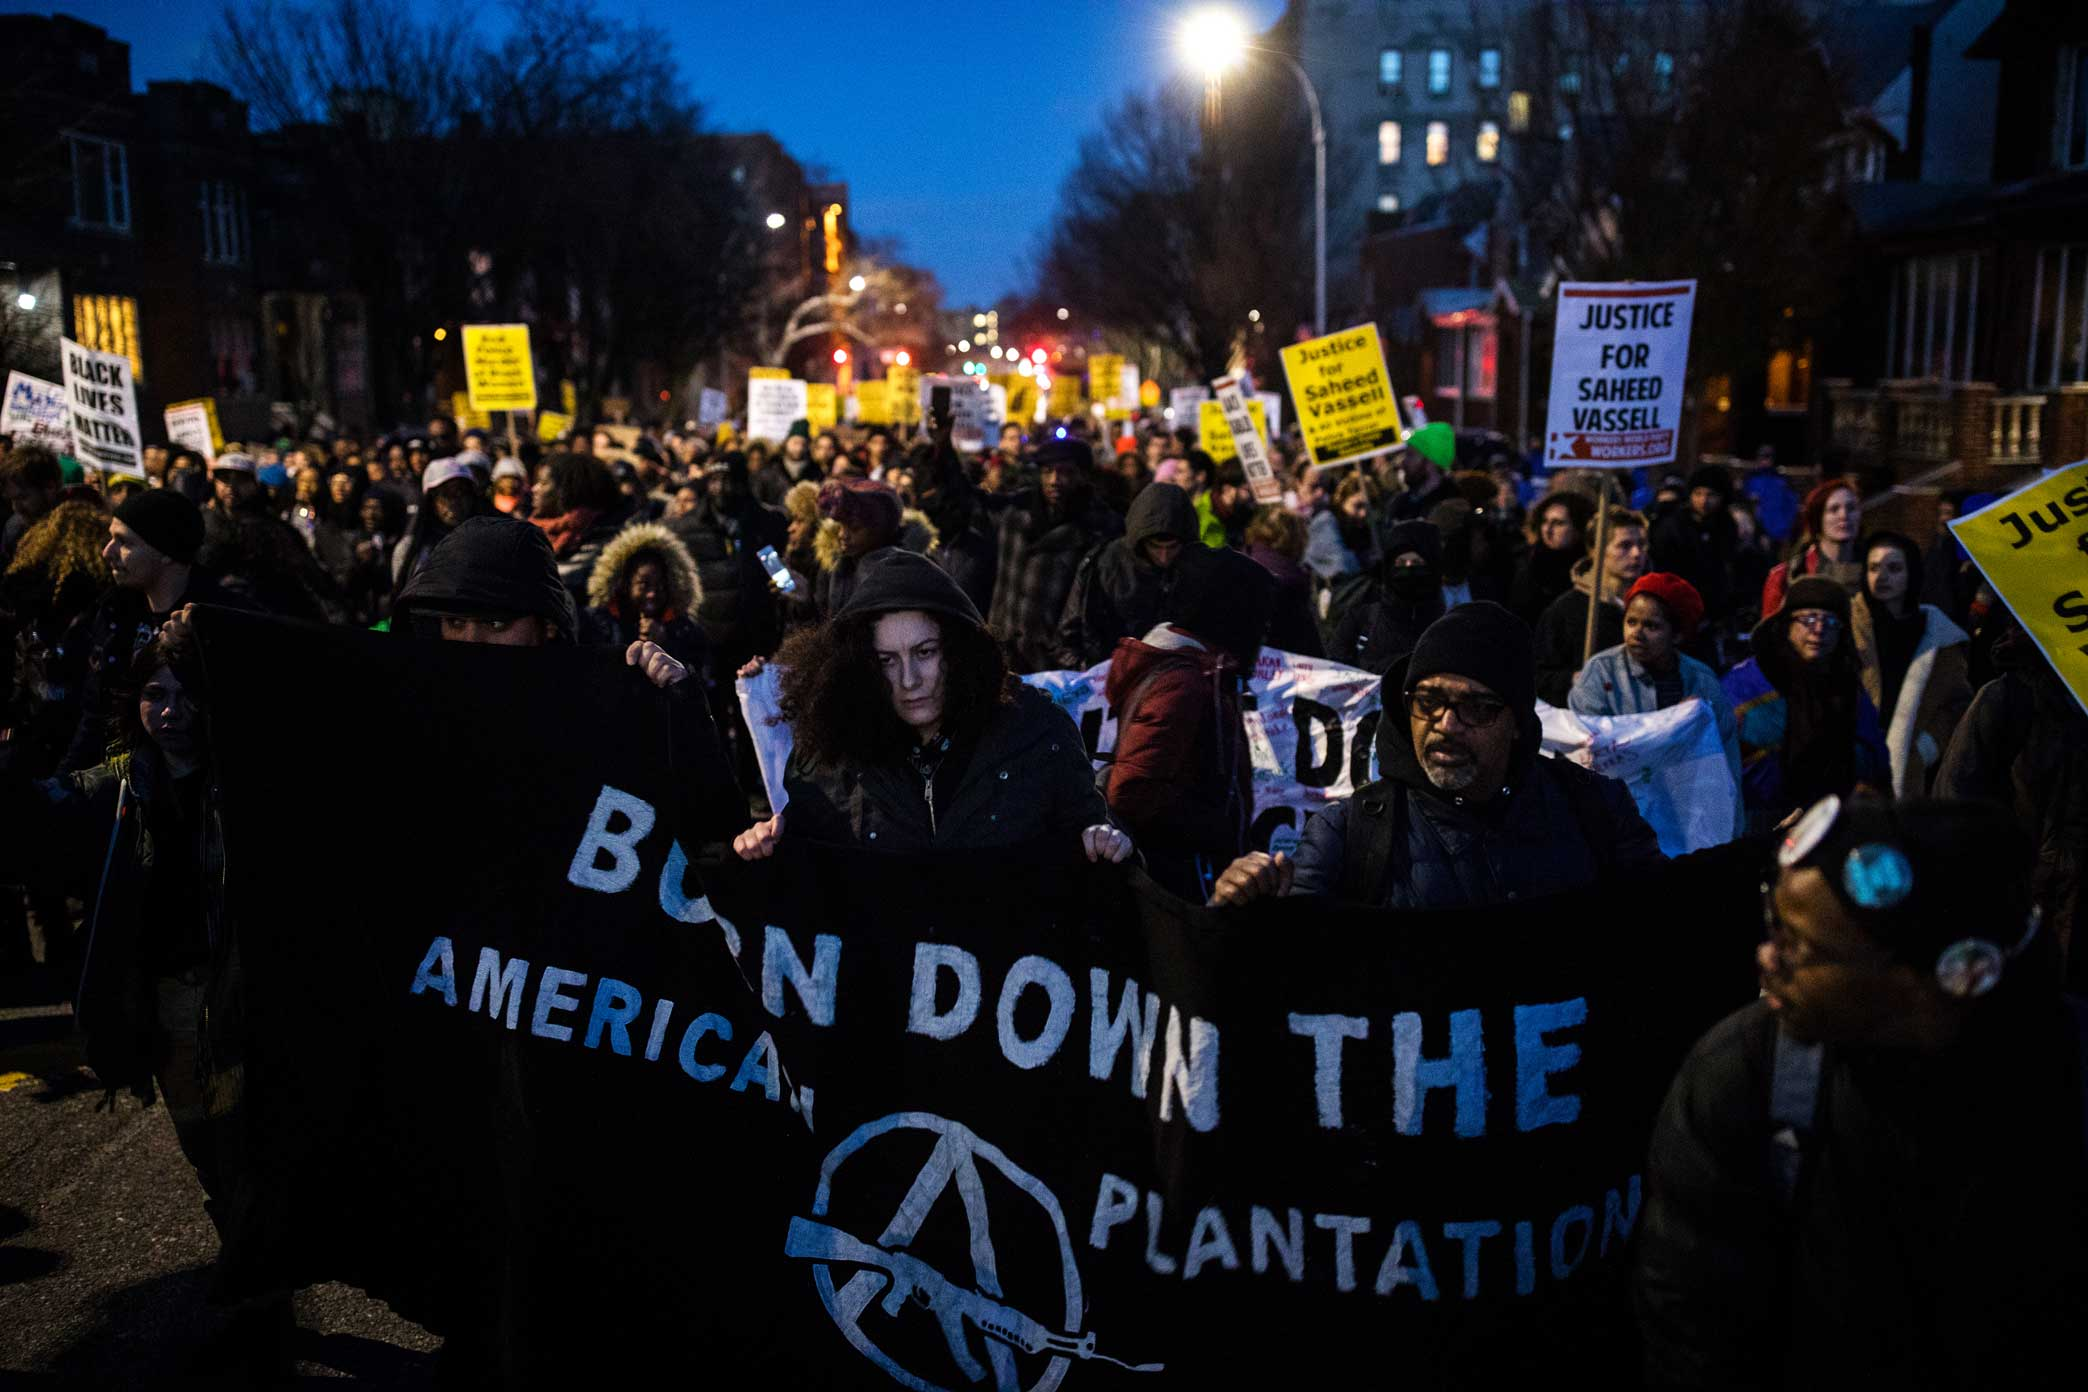 Protesters march in the street to the New York City Police Department - 71st Precinct in Brooklyn.